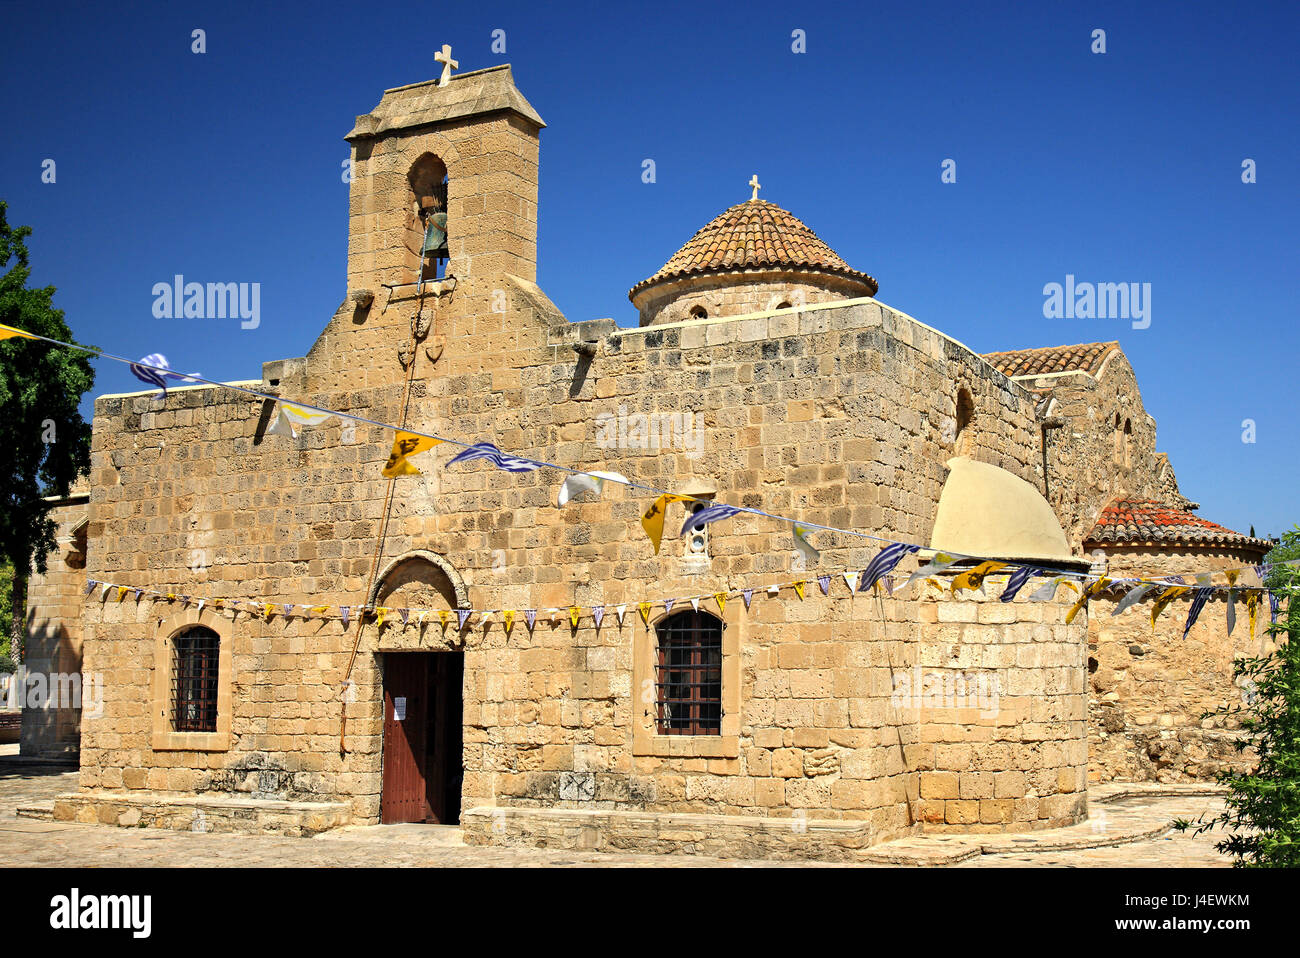 "Panagia Angeloktisti (""Panagia Built by Angels"") , a Byzantine church located in the village of Kiti, close to Larnaca Stock Photo"